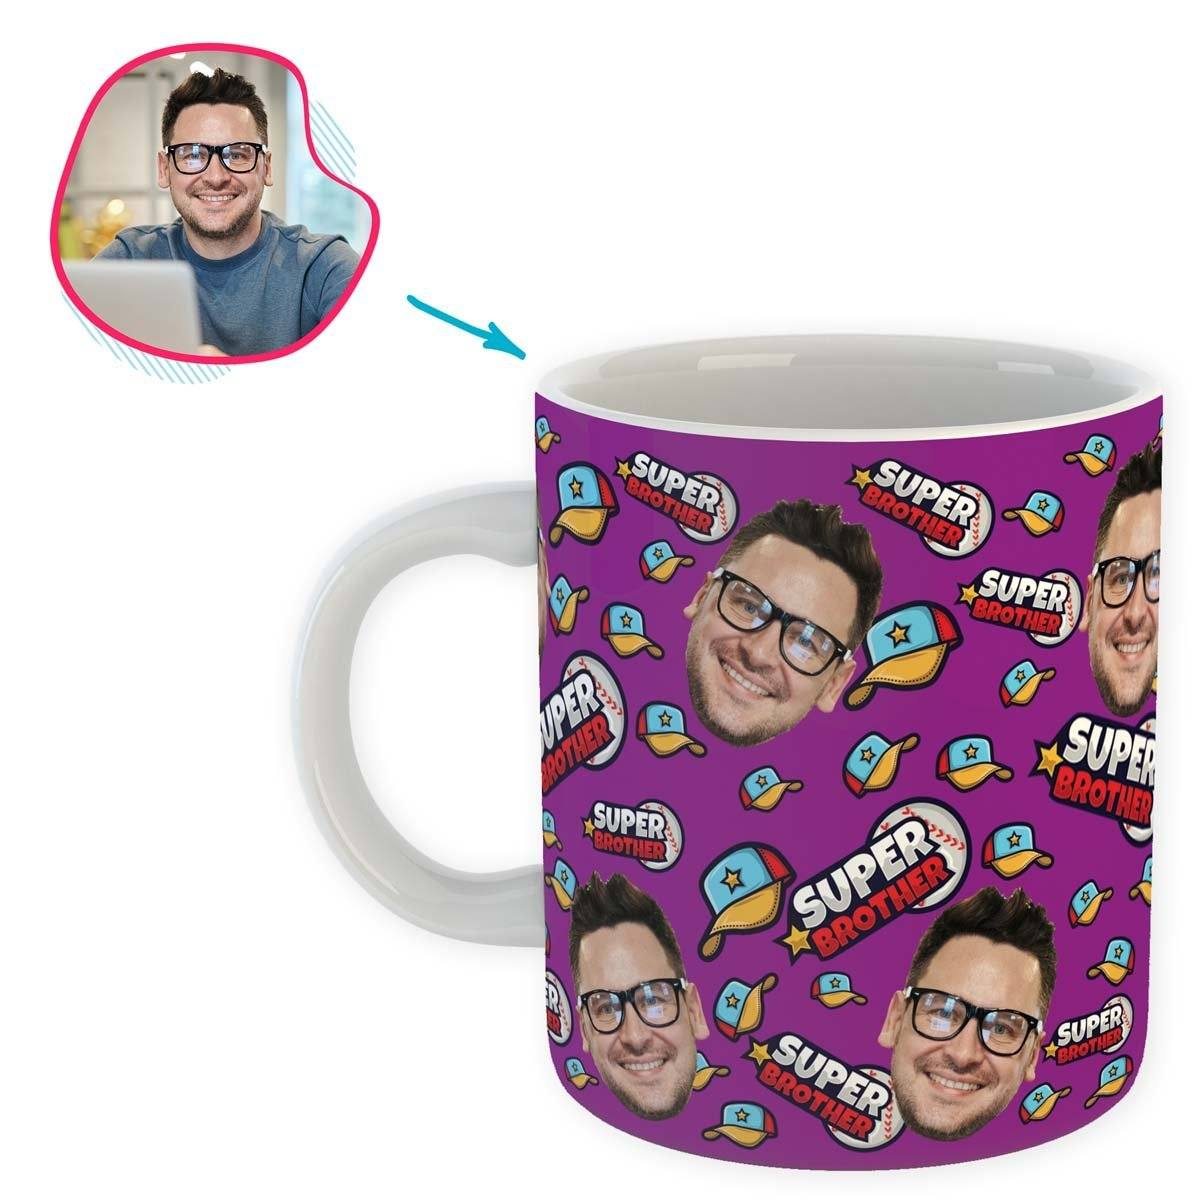 purple Super Brother mug personalized with photo of face printed on it